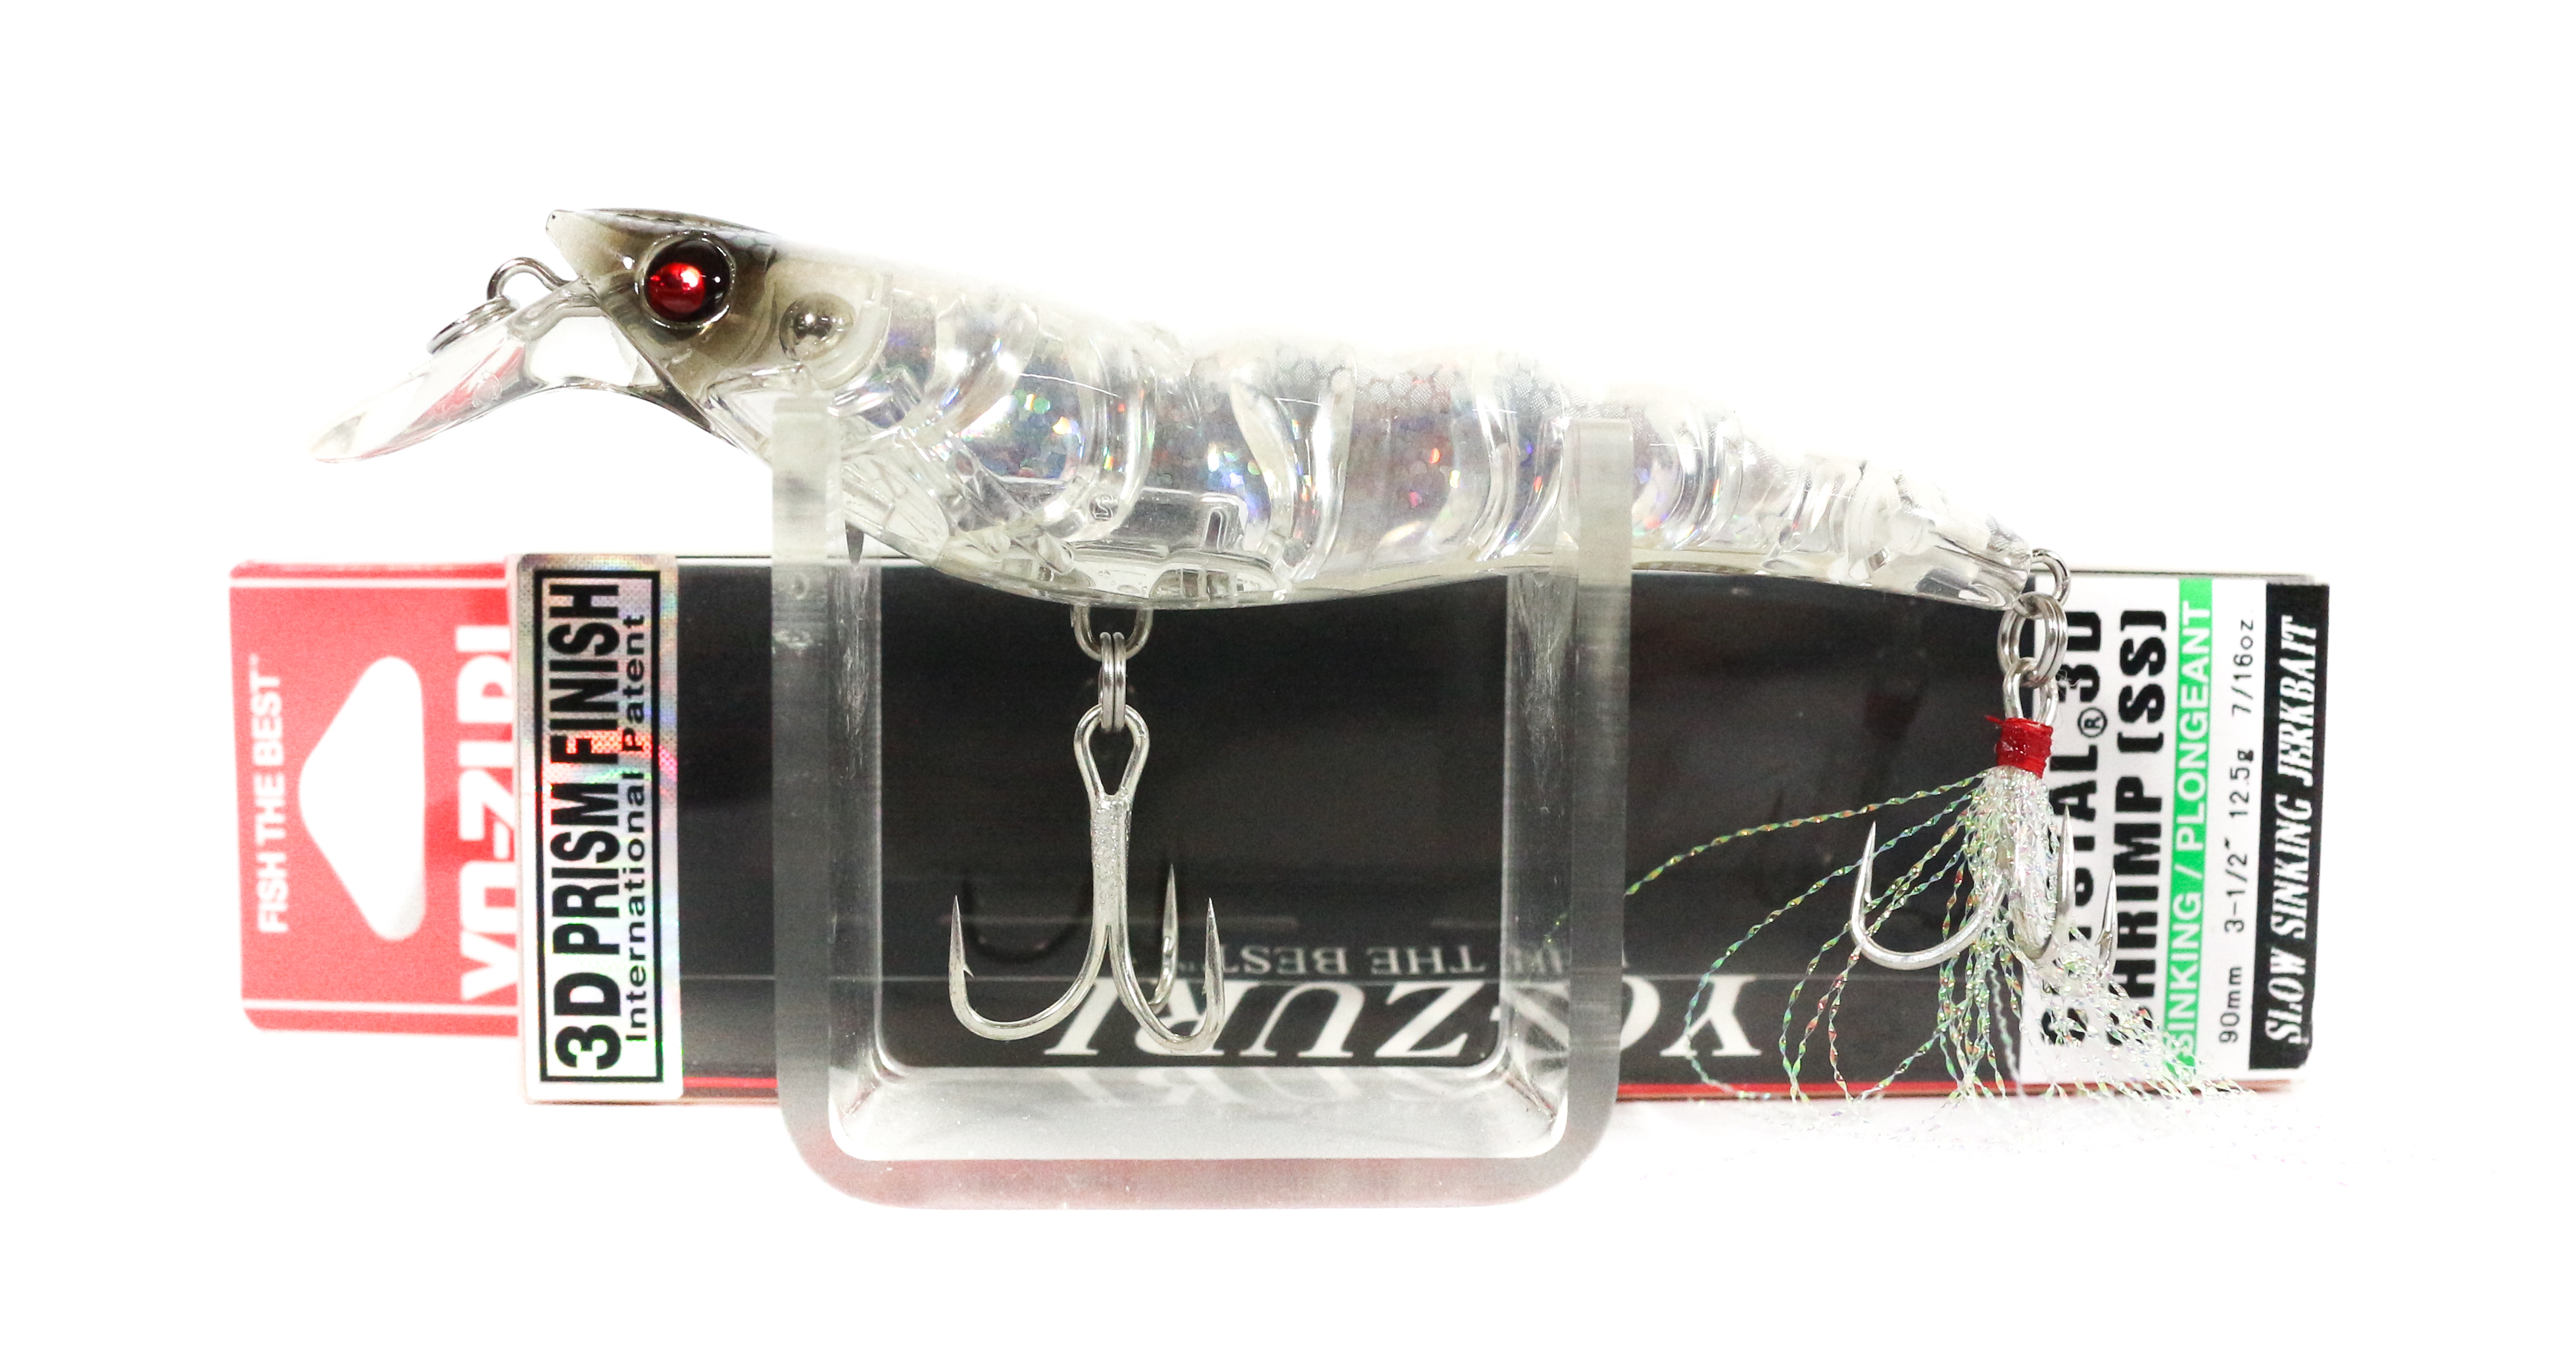 Yo Zuri 3D Crystal Shrimp 90 mm Sinking Lure R1162-HGS (2561)